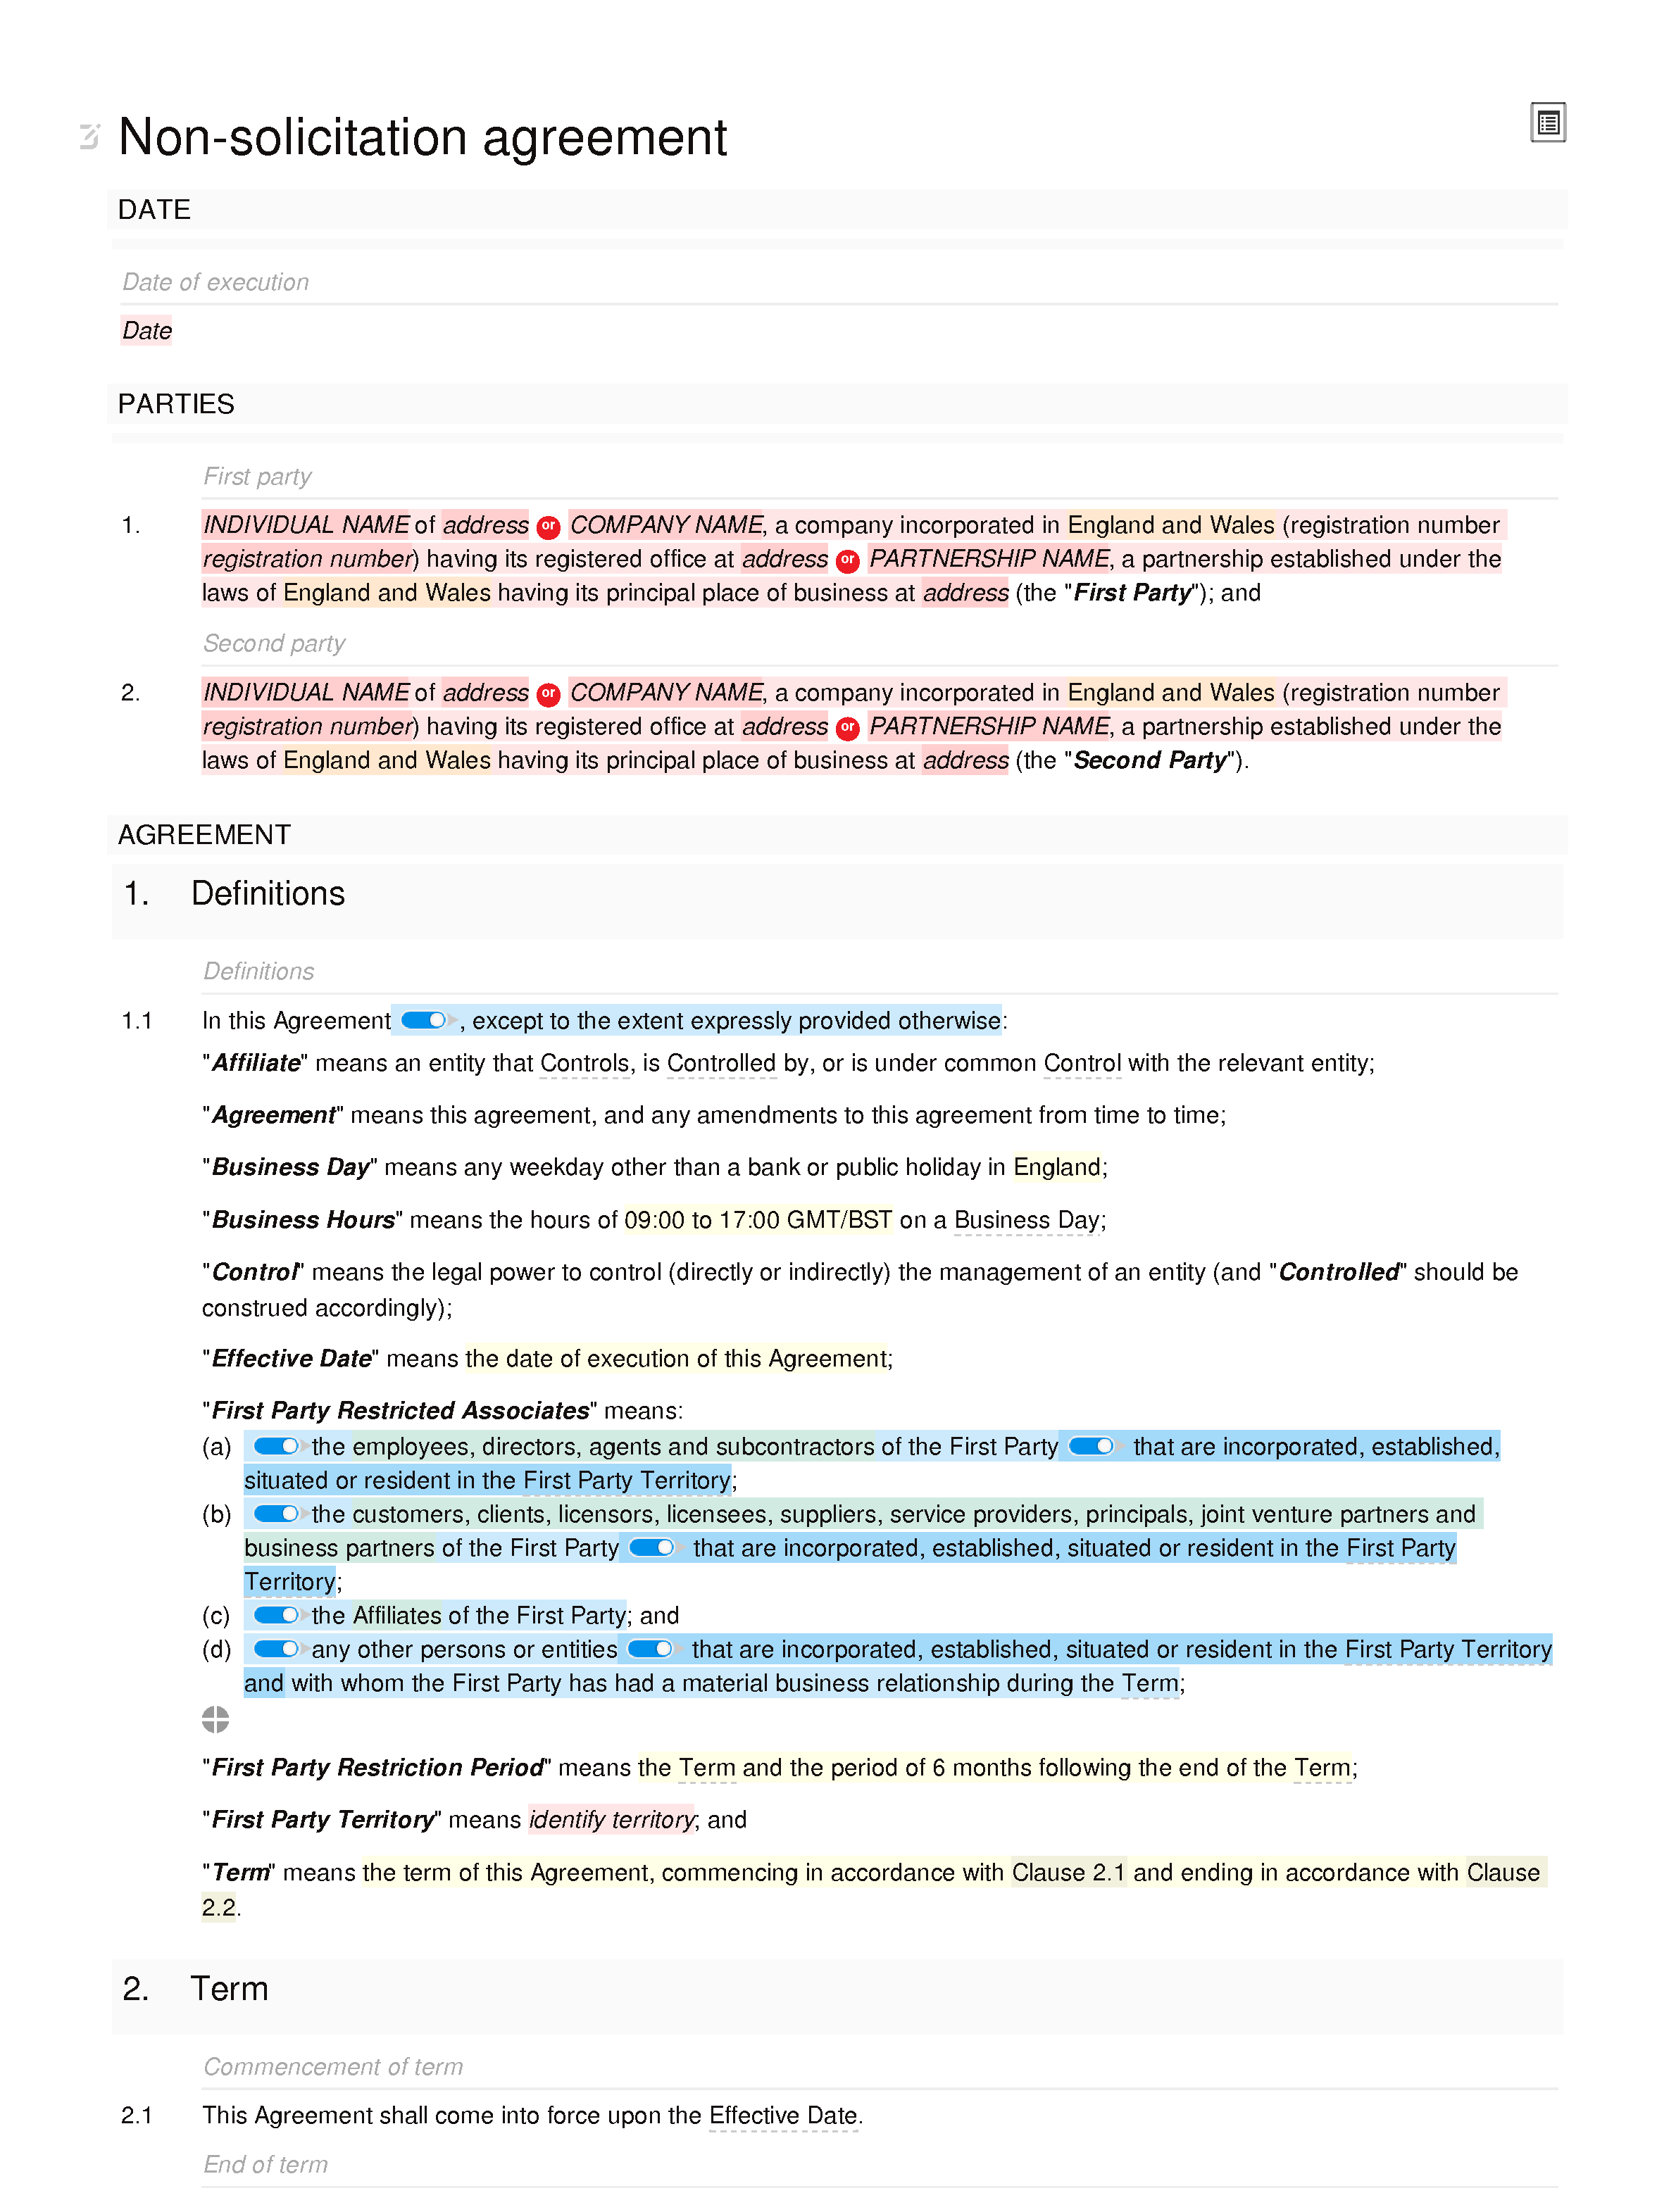 Non-solicitation agreement (unilateral) document editor preview